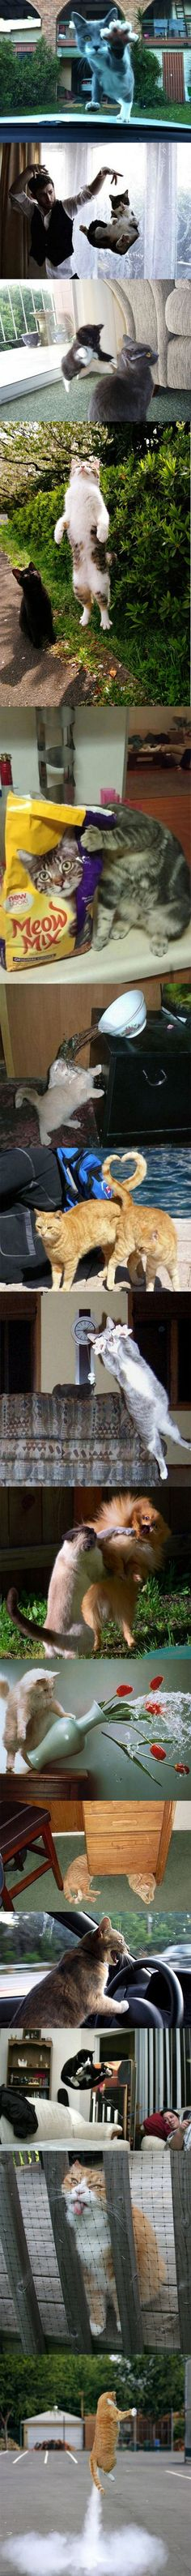 15 Perfectly Timed Catl Photos